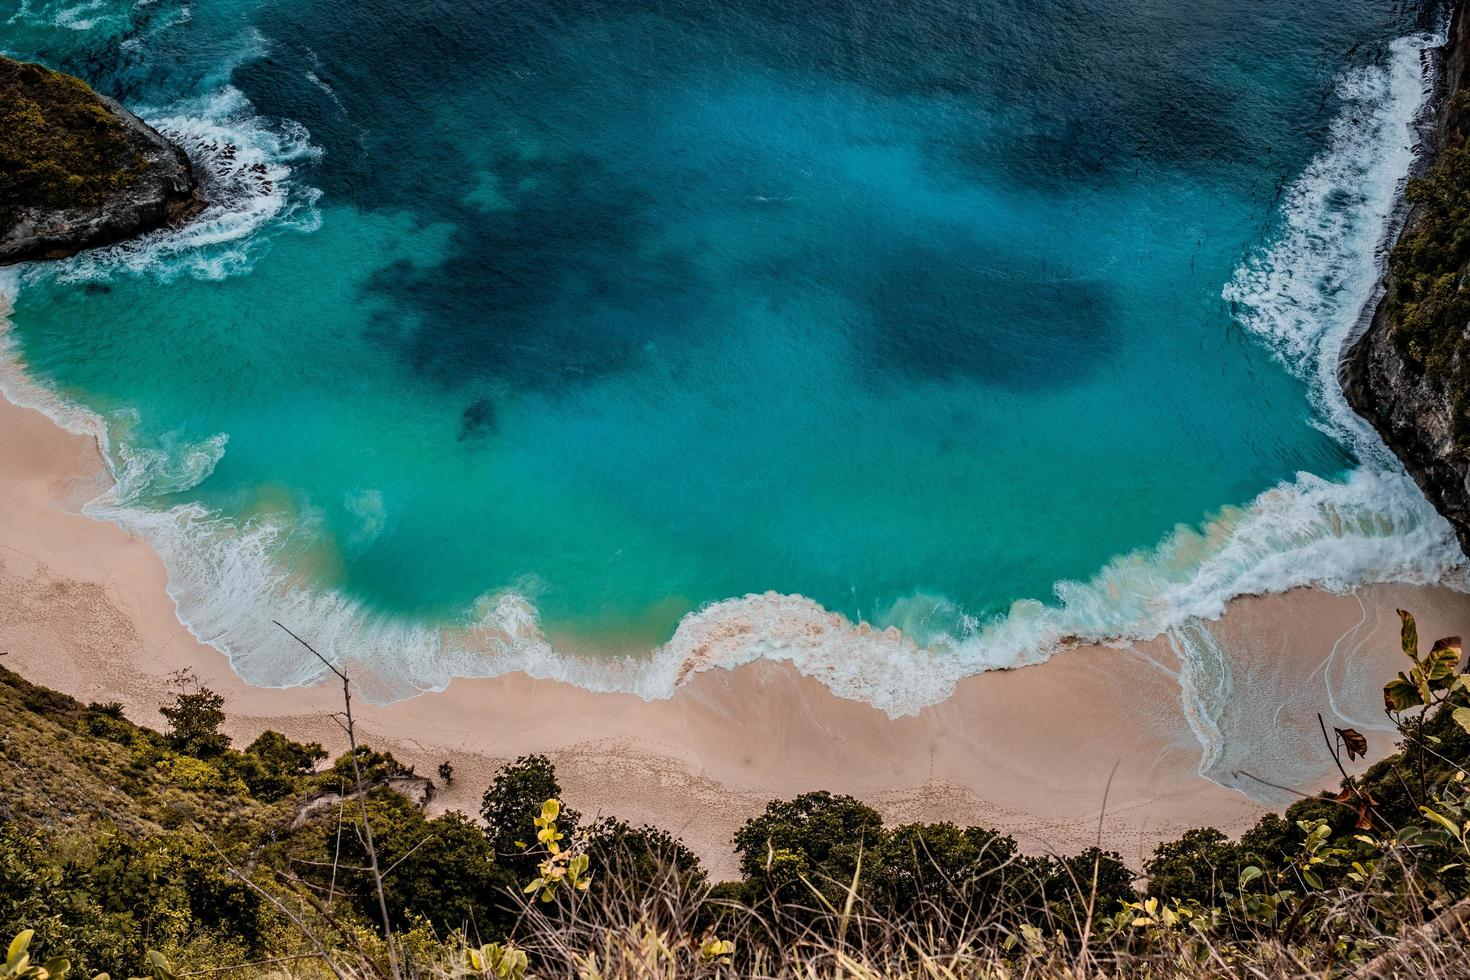 Overlooking a tropical beach with turquoise waters photo